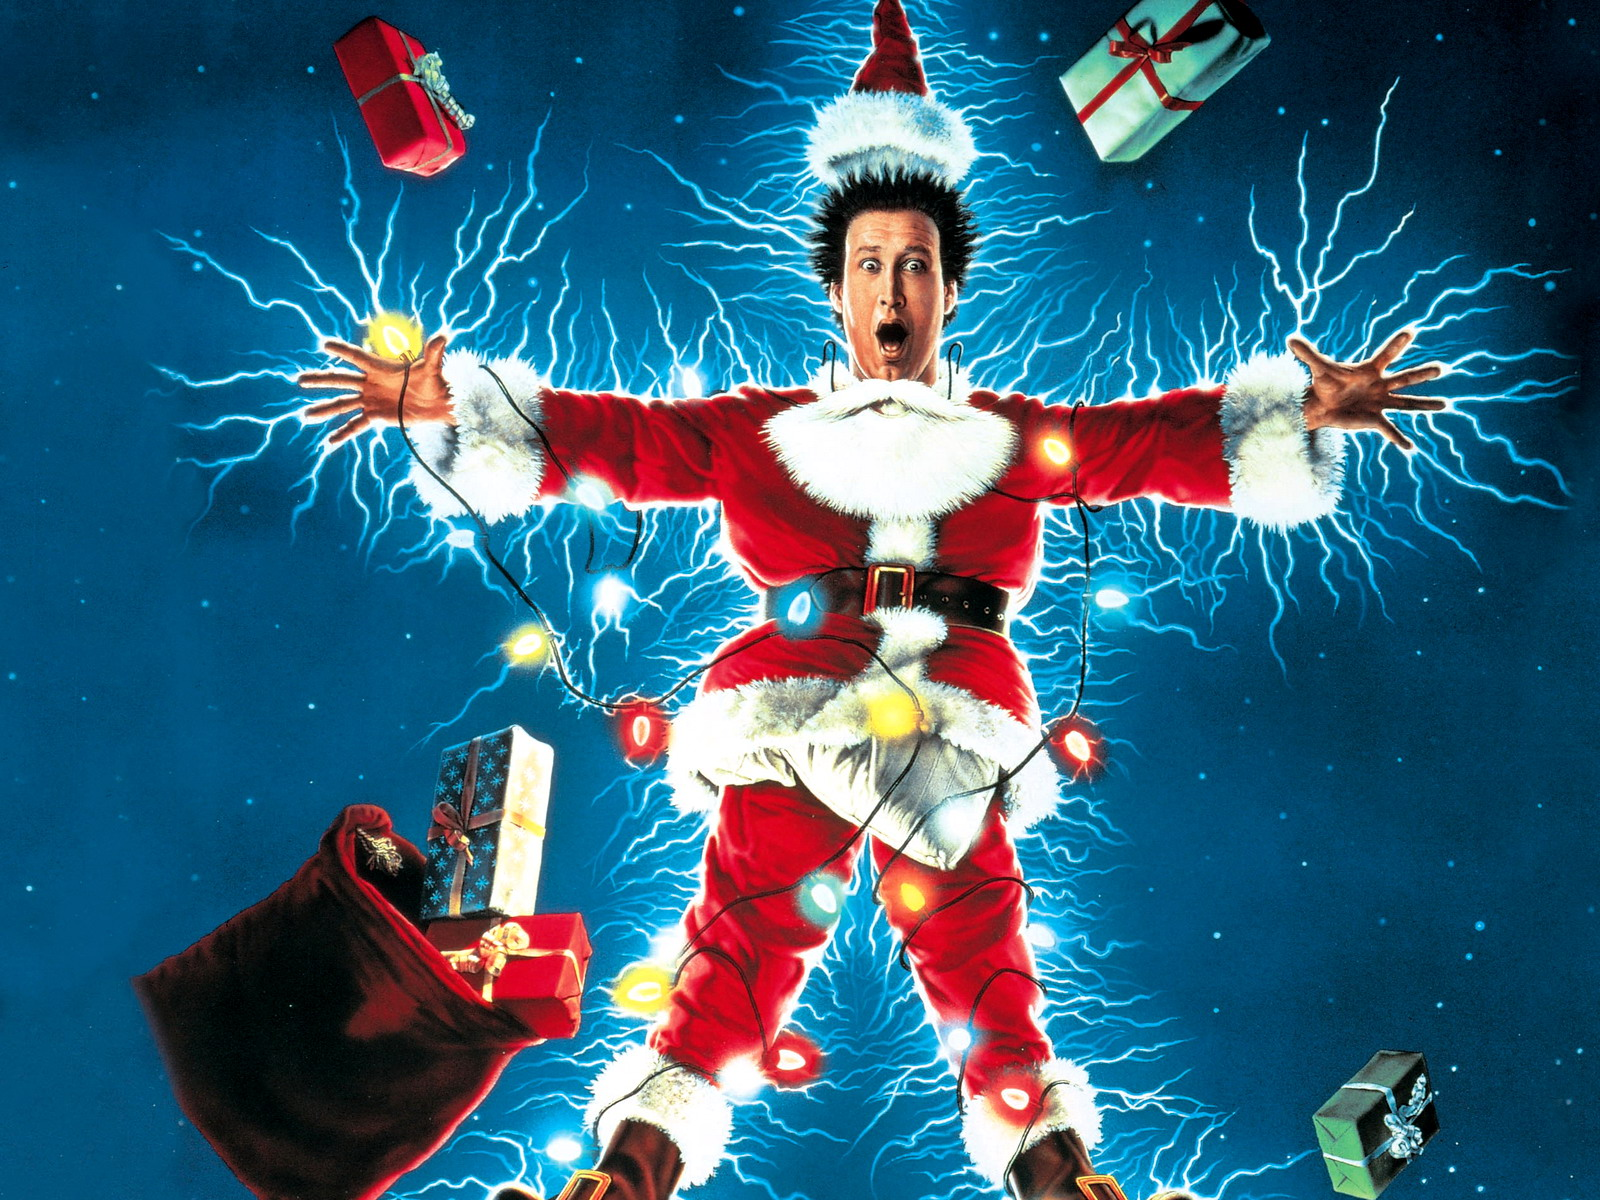 Christmas Vacation Christmas Vacation film movie wallpapers 1600x1200